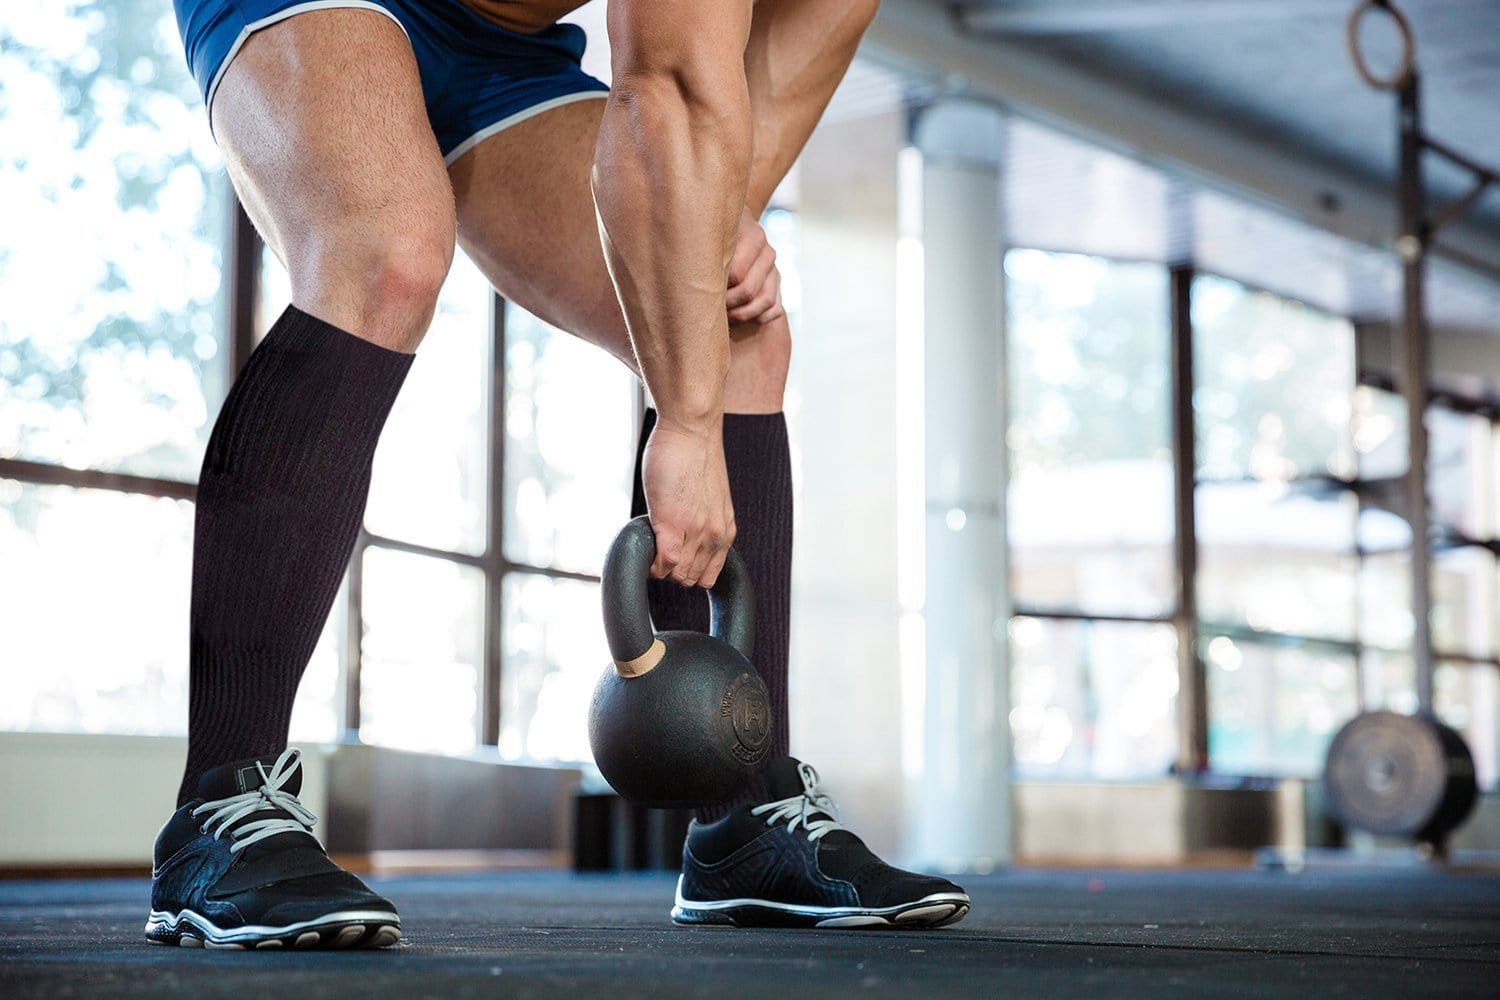 Copper Compression Socks will help your workouts tremendously, allowing you to exert more energy due to the fact that your legs will be able to handle with the Copper Infused Socks